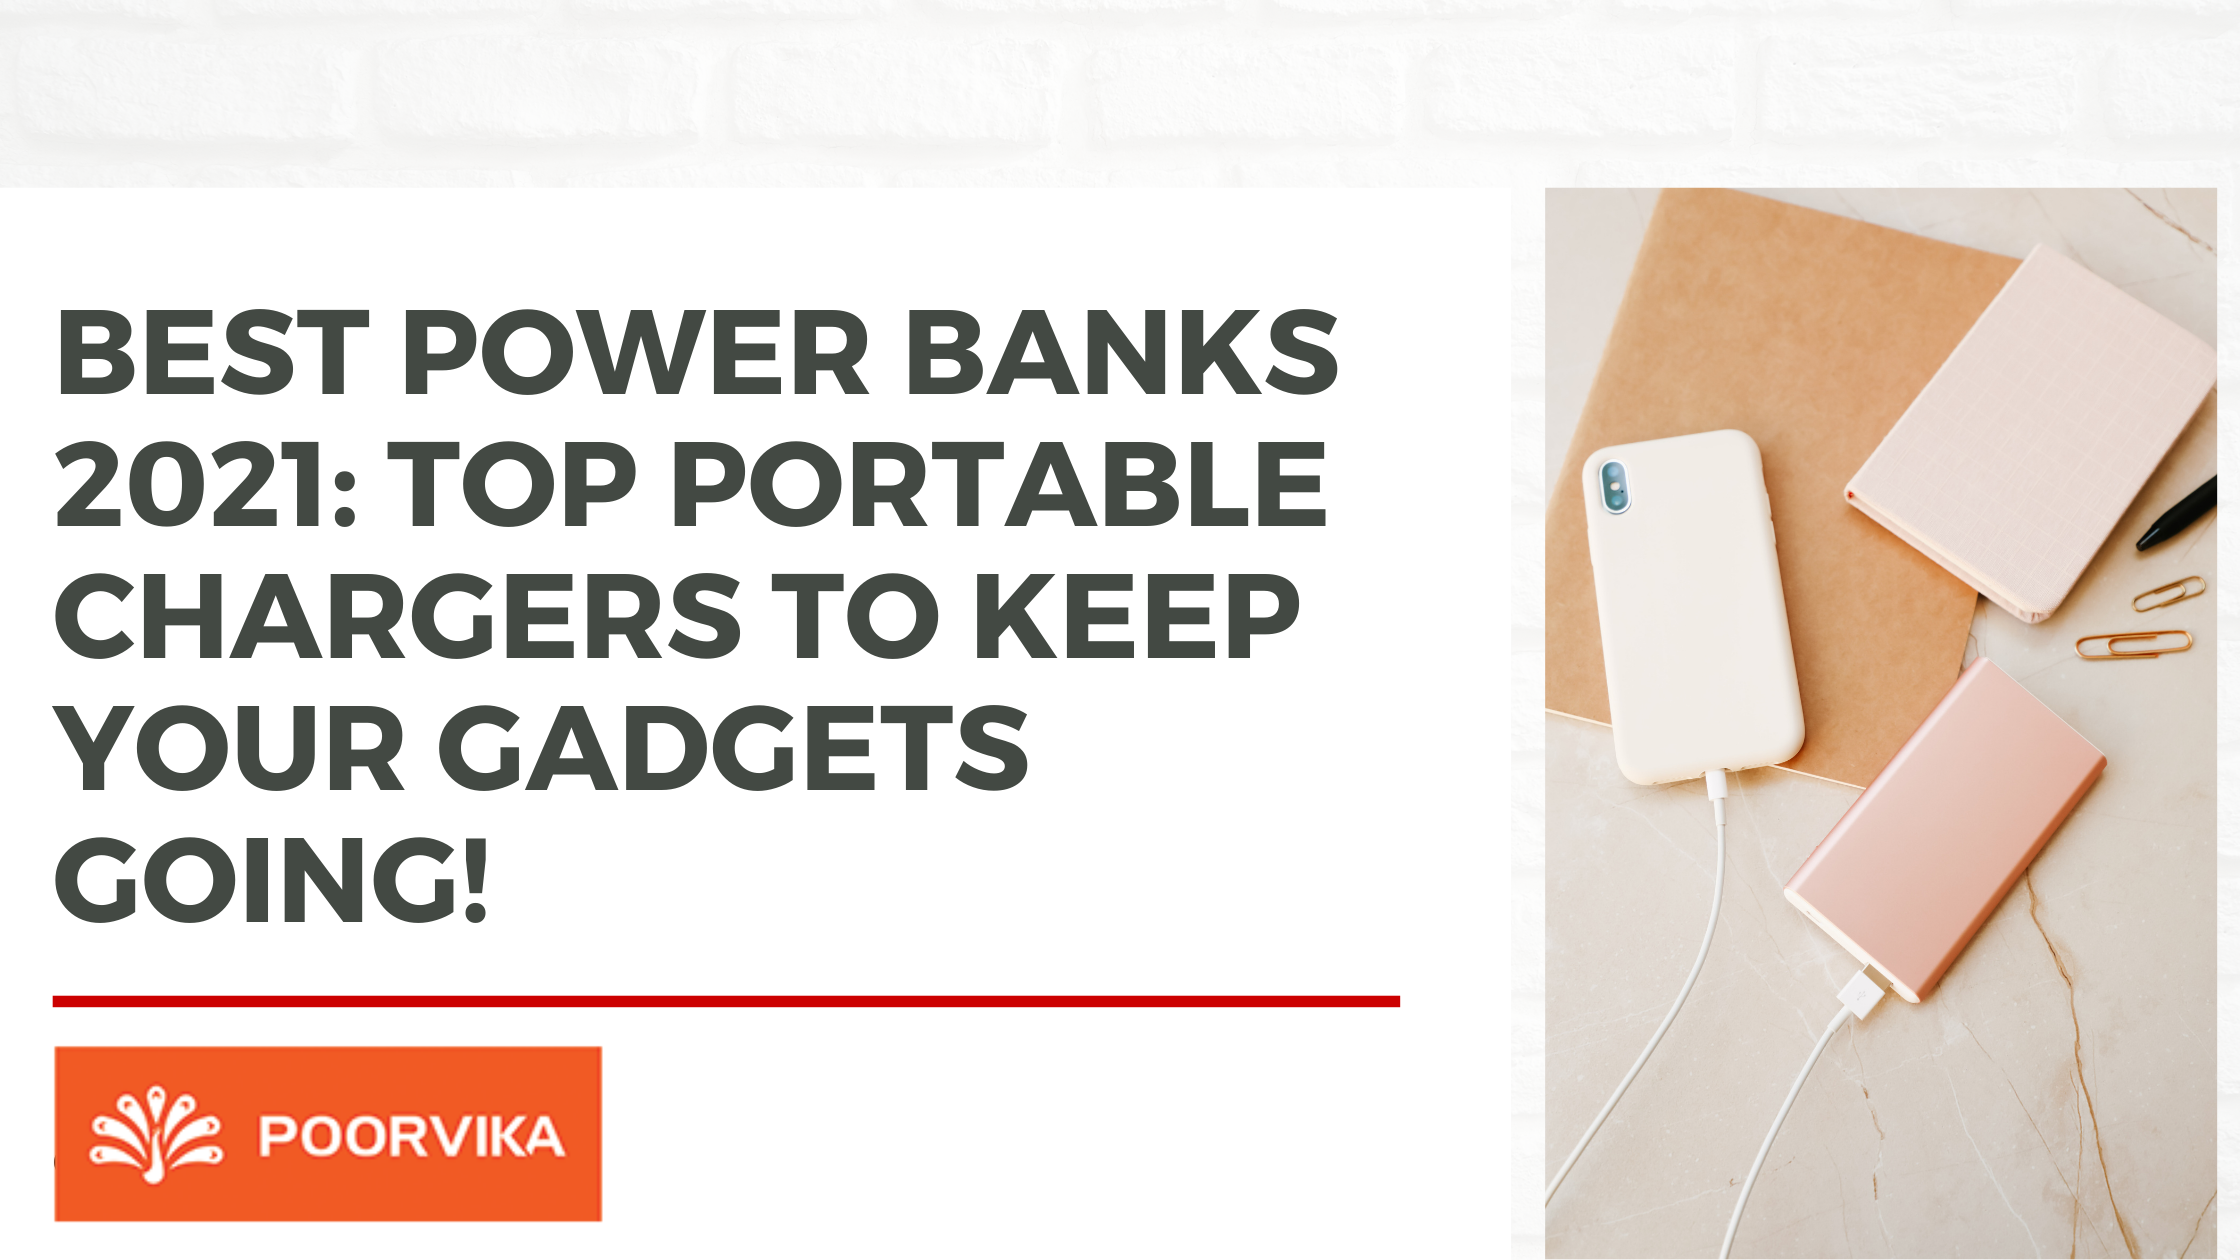 BEST POWER BANKS 2021 TOP PORTABLE CHARGERS TO KEEP YOUR GADGETS GOING!